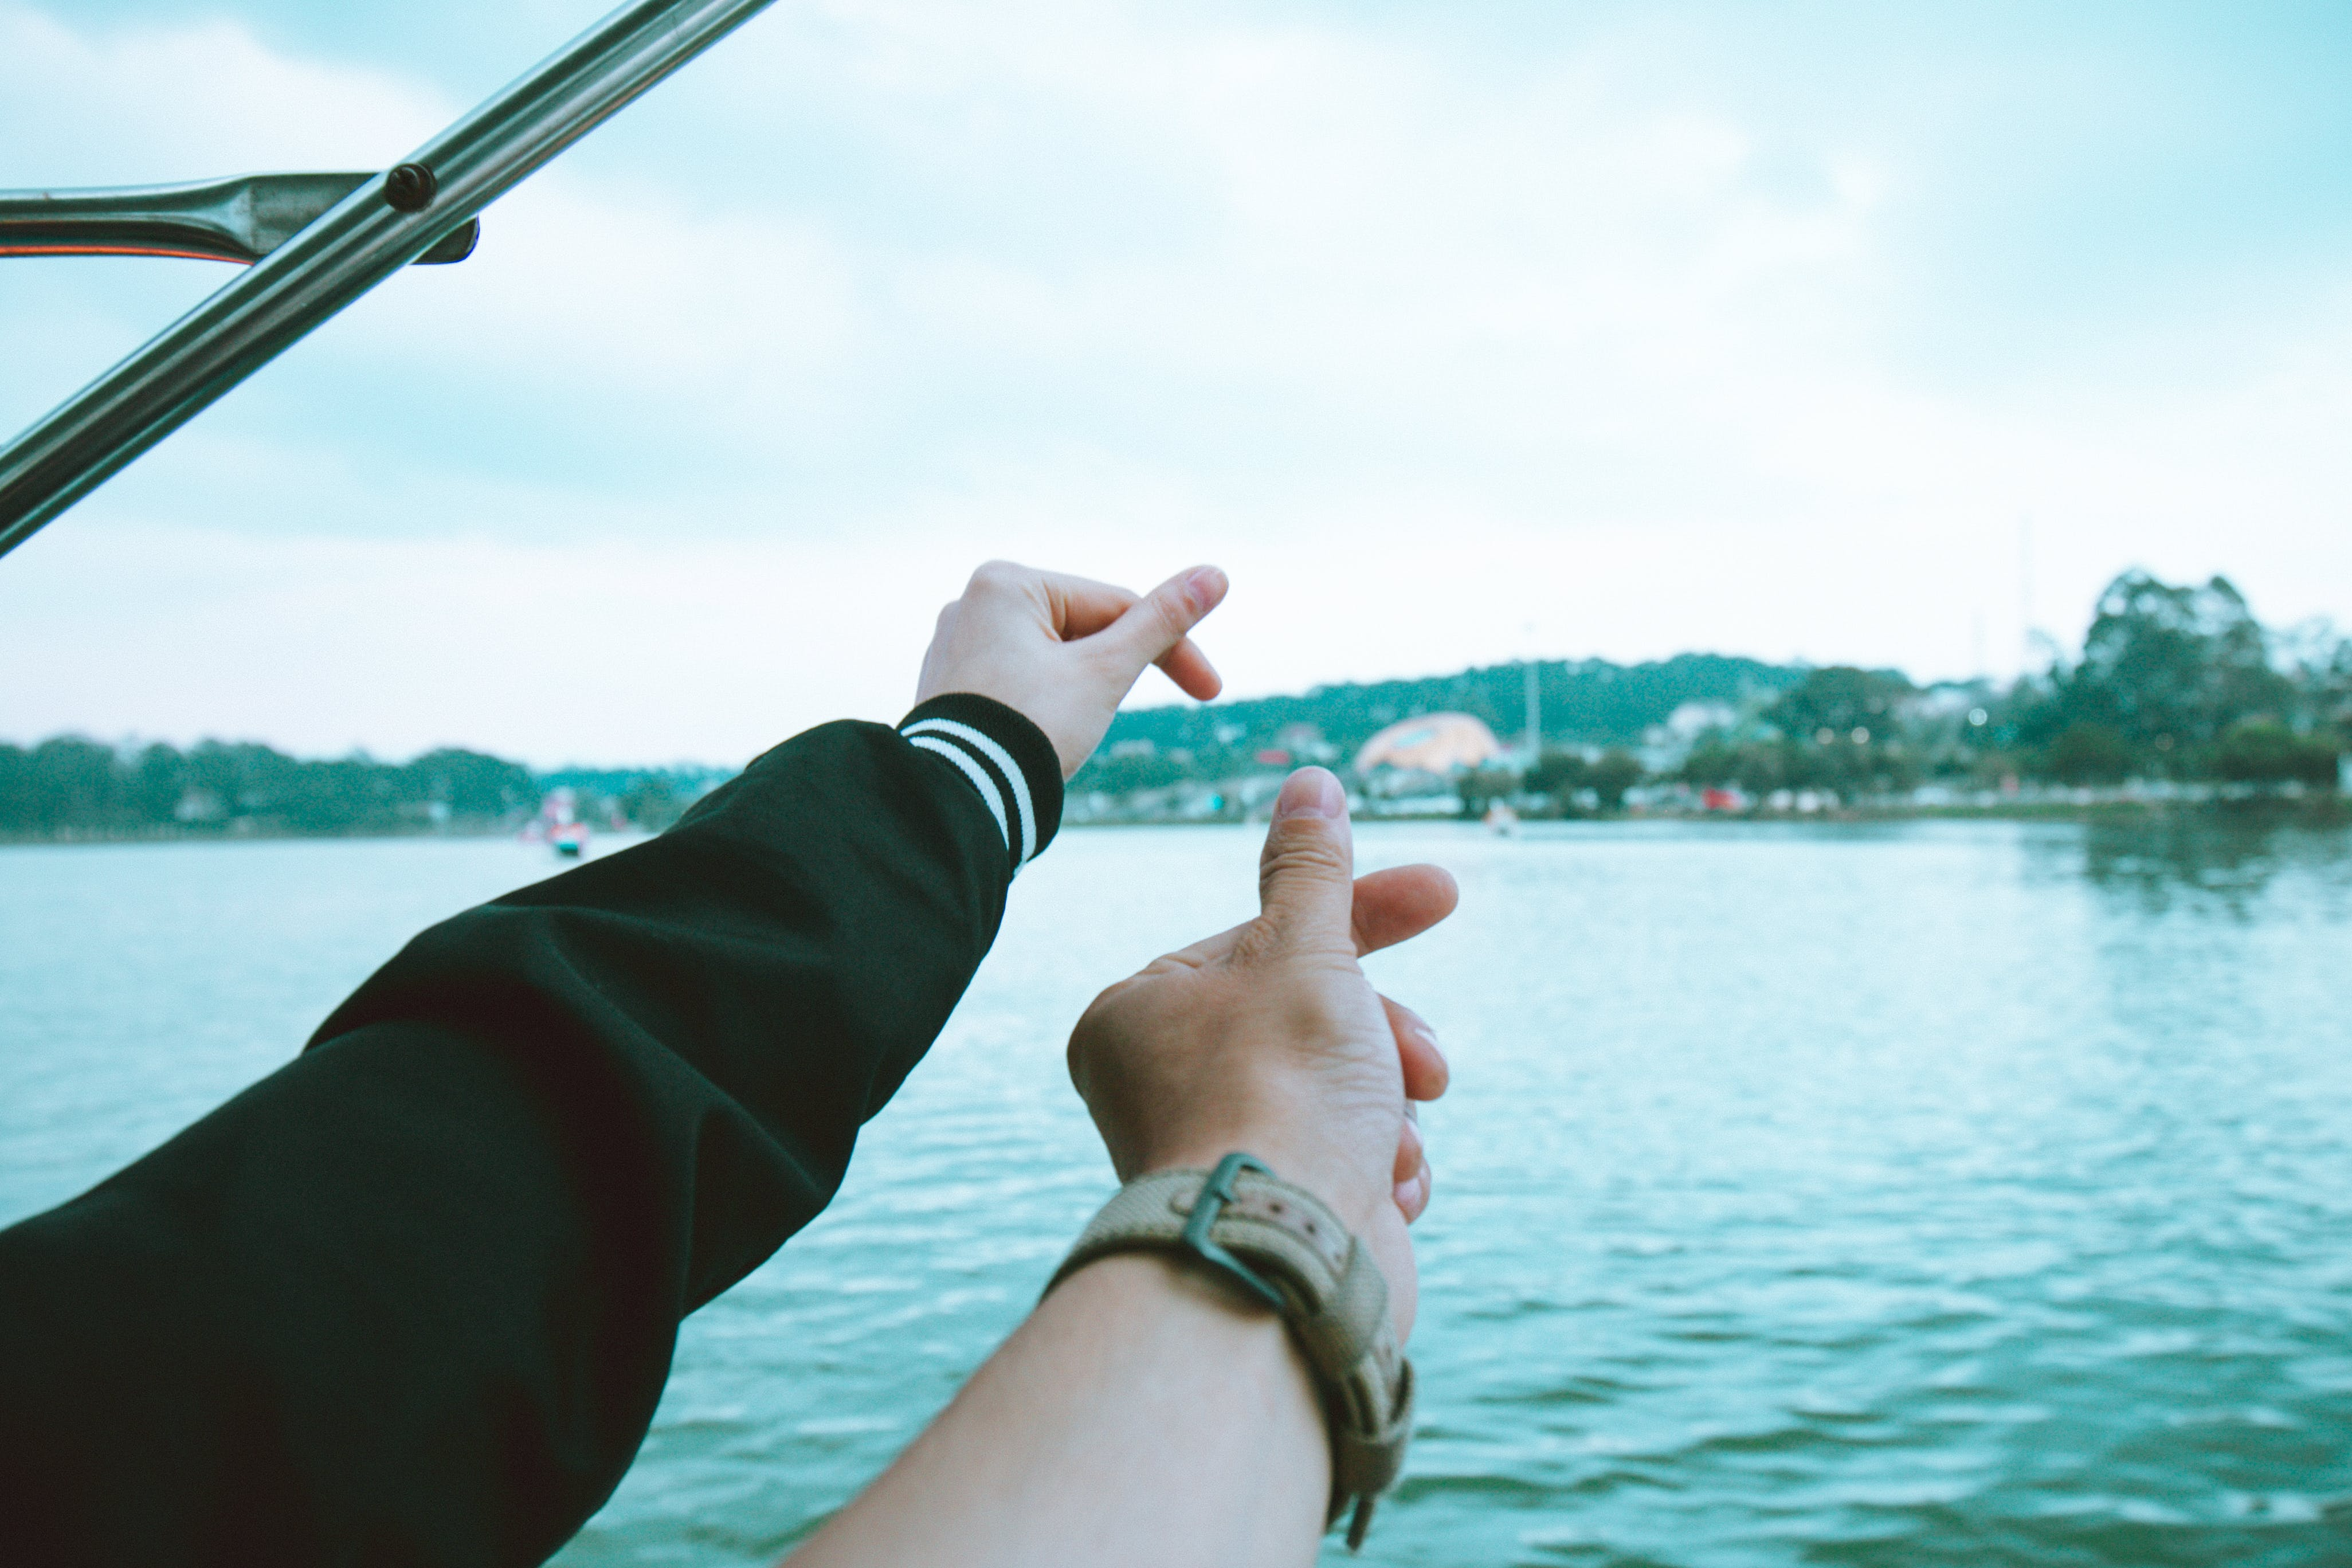 Two Person's Left Hand Making Finger Heart Sign Near Body of Water